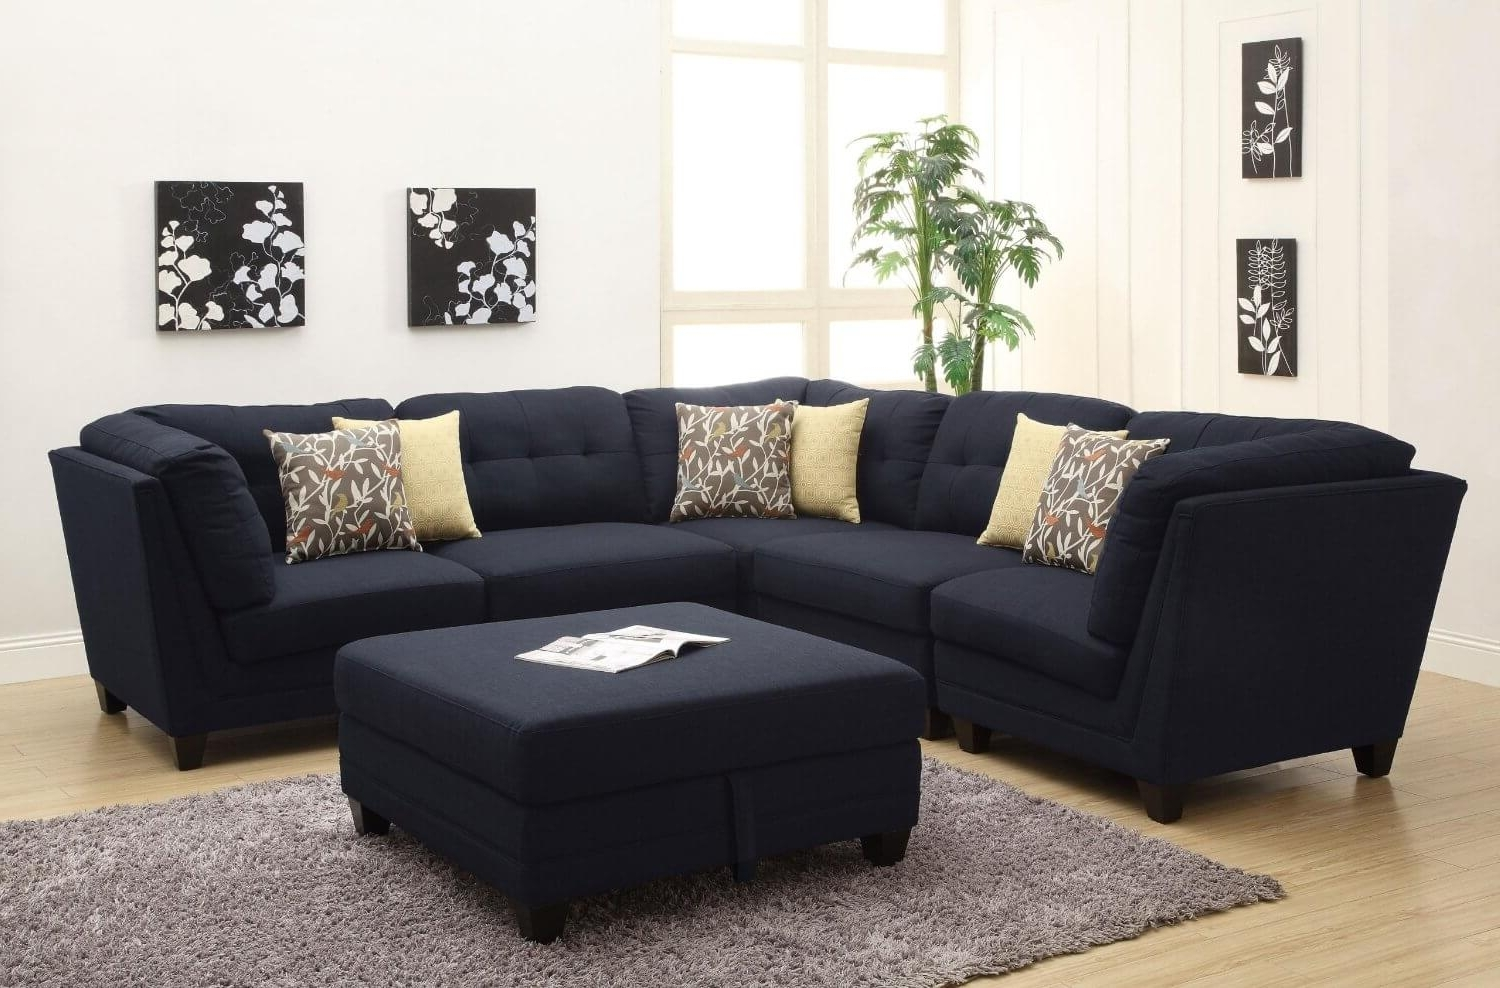 Best And Newest 100 Awesome Sectional Sofas Under $1,000 (2018) With Mid Range Sofas (View 17 of 20)